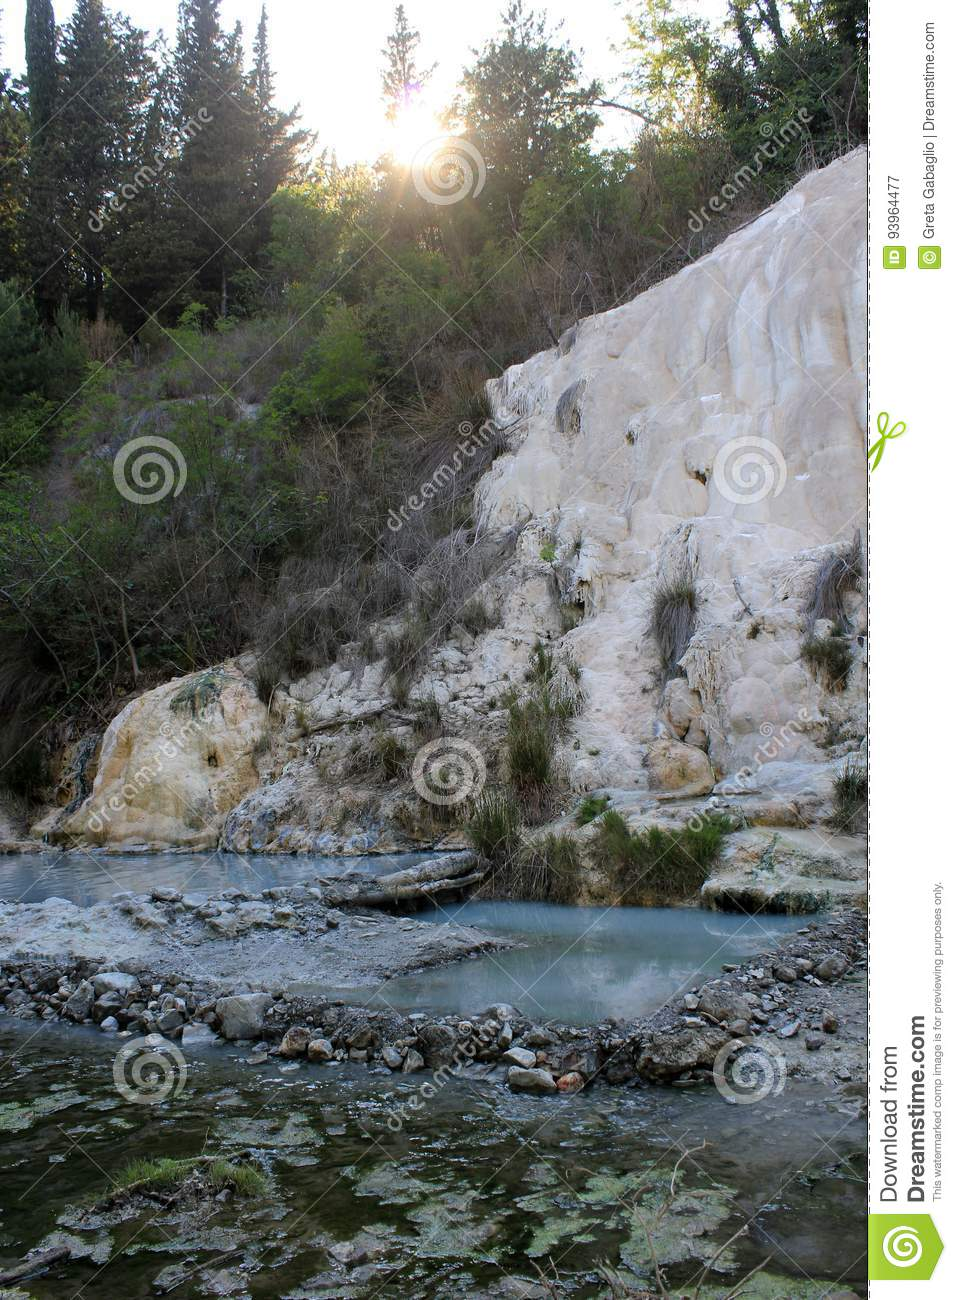 Fosso Bianco Rock Formation In Tuscany Stock Image - Image of fosso ...